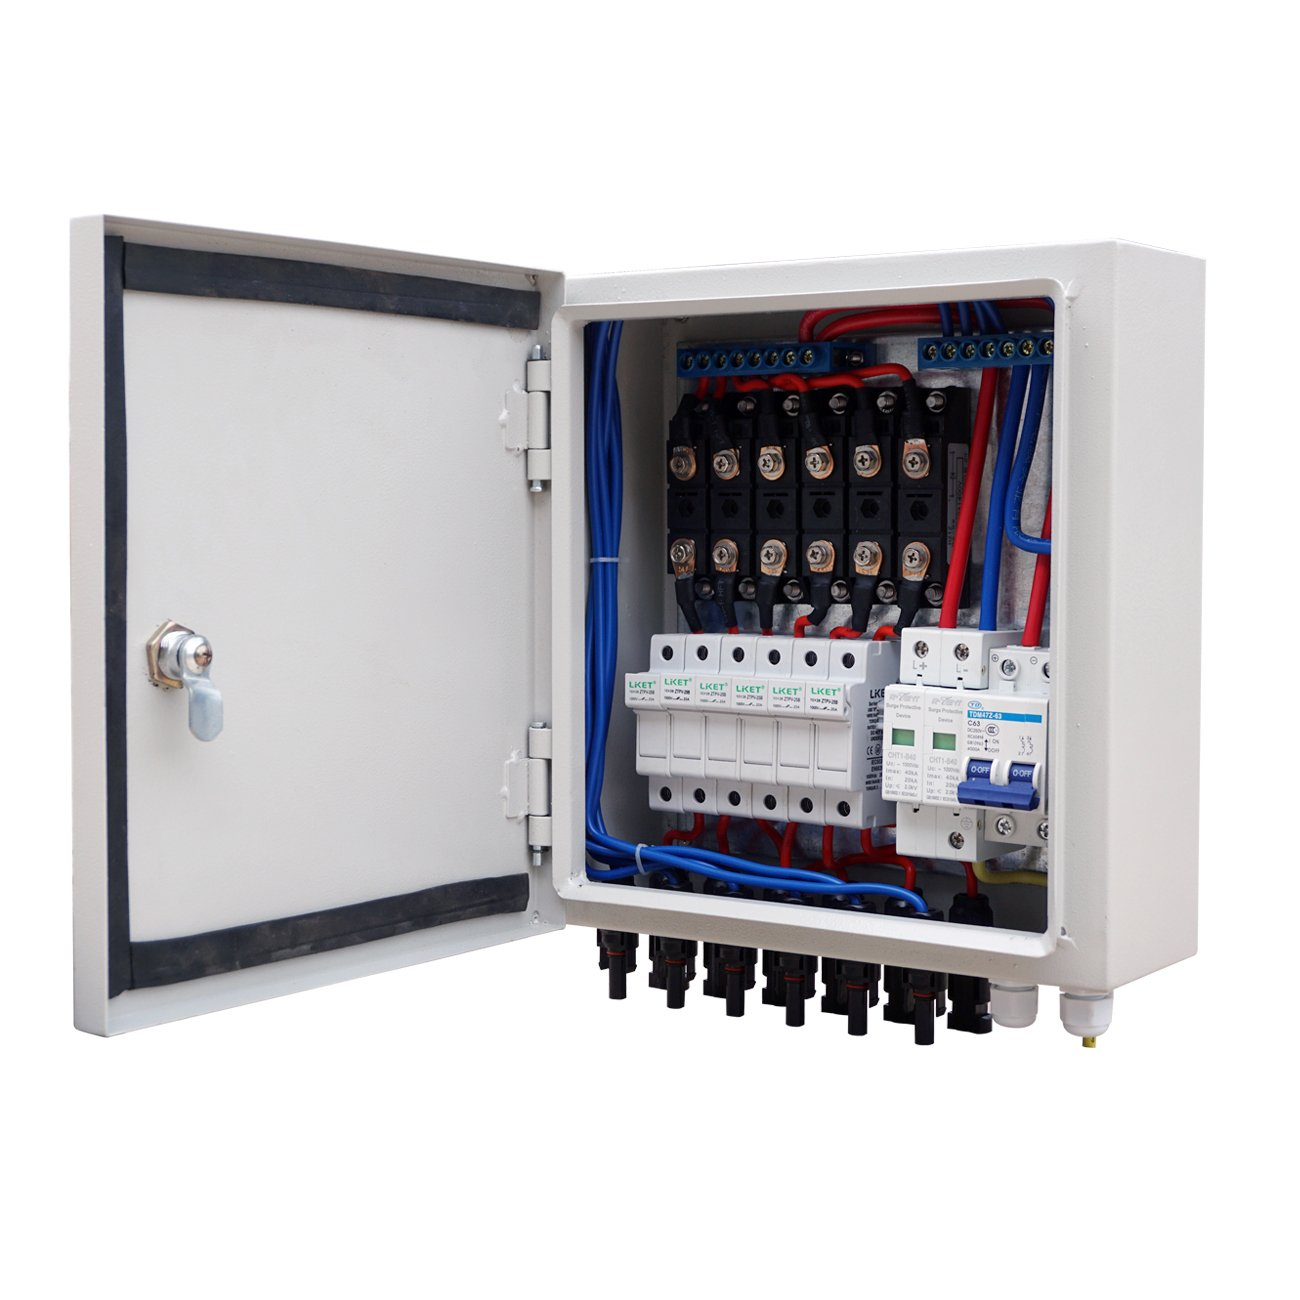 Eco Llc 6 String Pv Combiner Box 10a Breaker For Solar Circuit Panel Image Page Off Grid System Kit Garden Outdoor